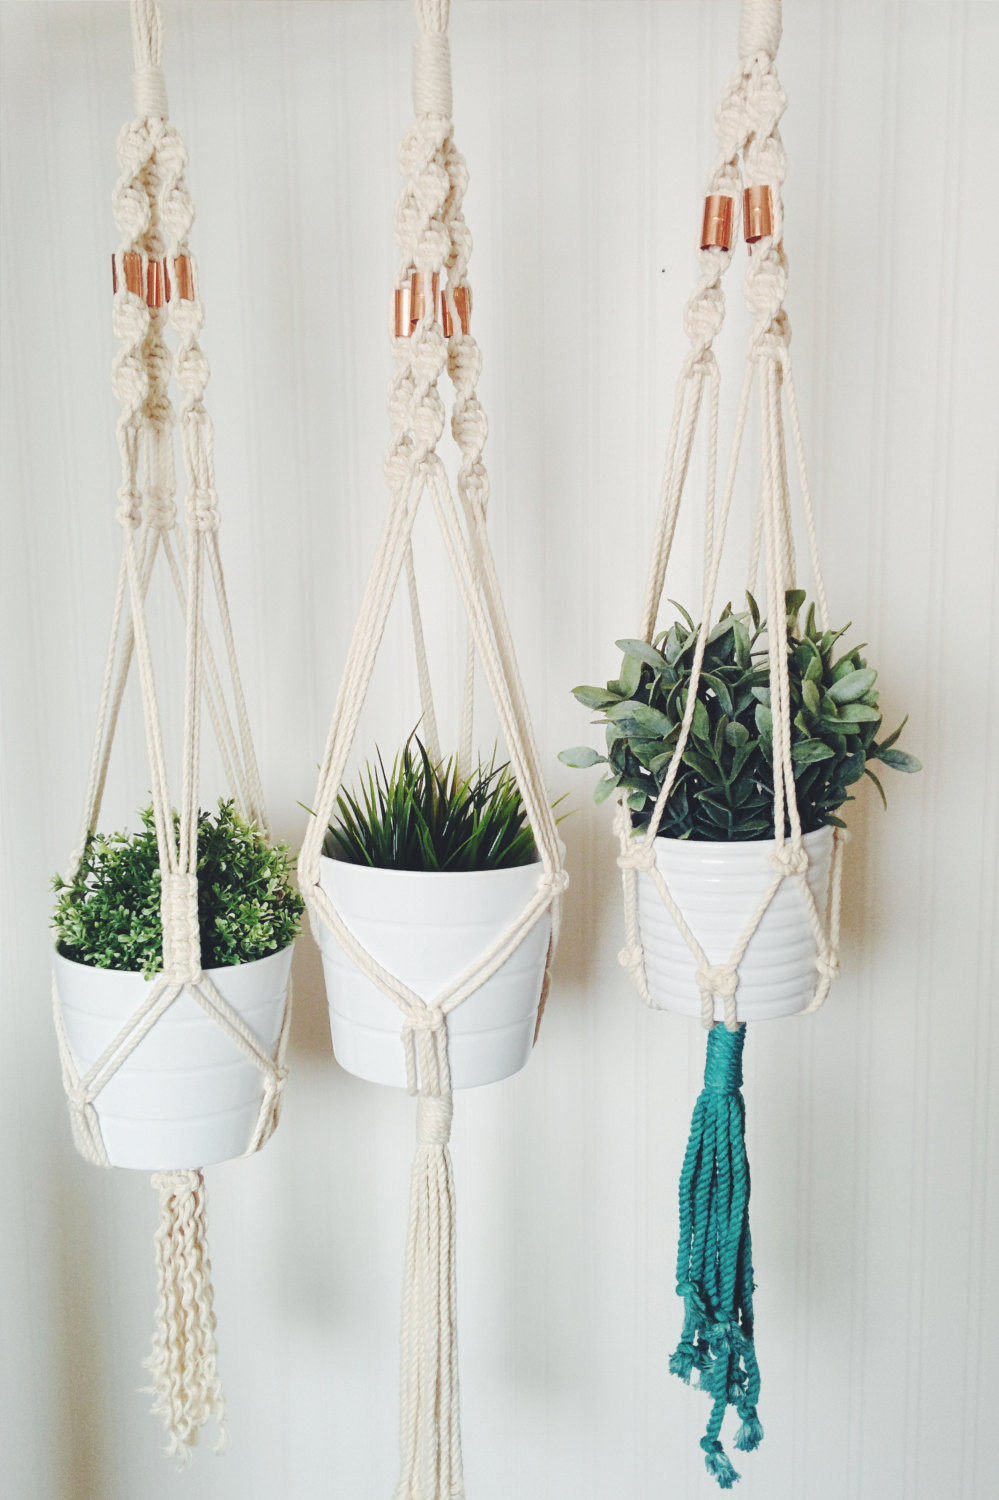 Macrame Plant Holder Best Of Macrame Plant Hanger Hanging Planter Of Luxury 45 Images Macrame Plant Holder